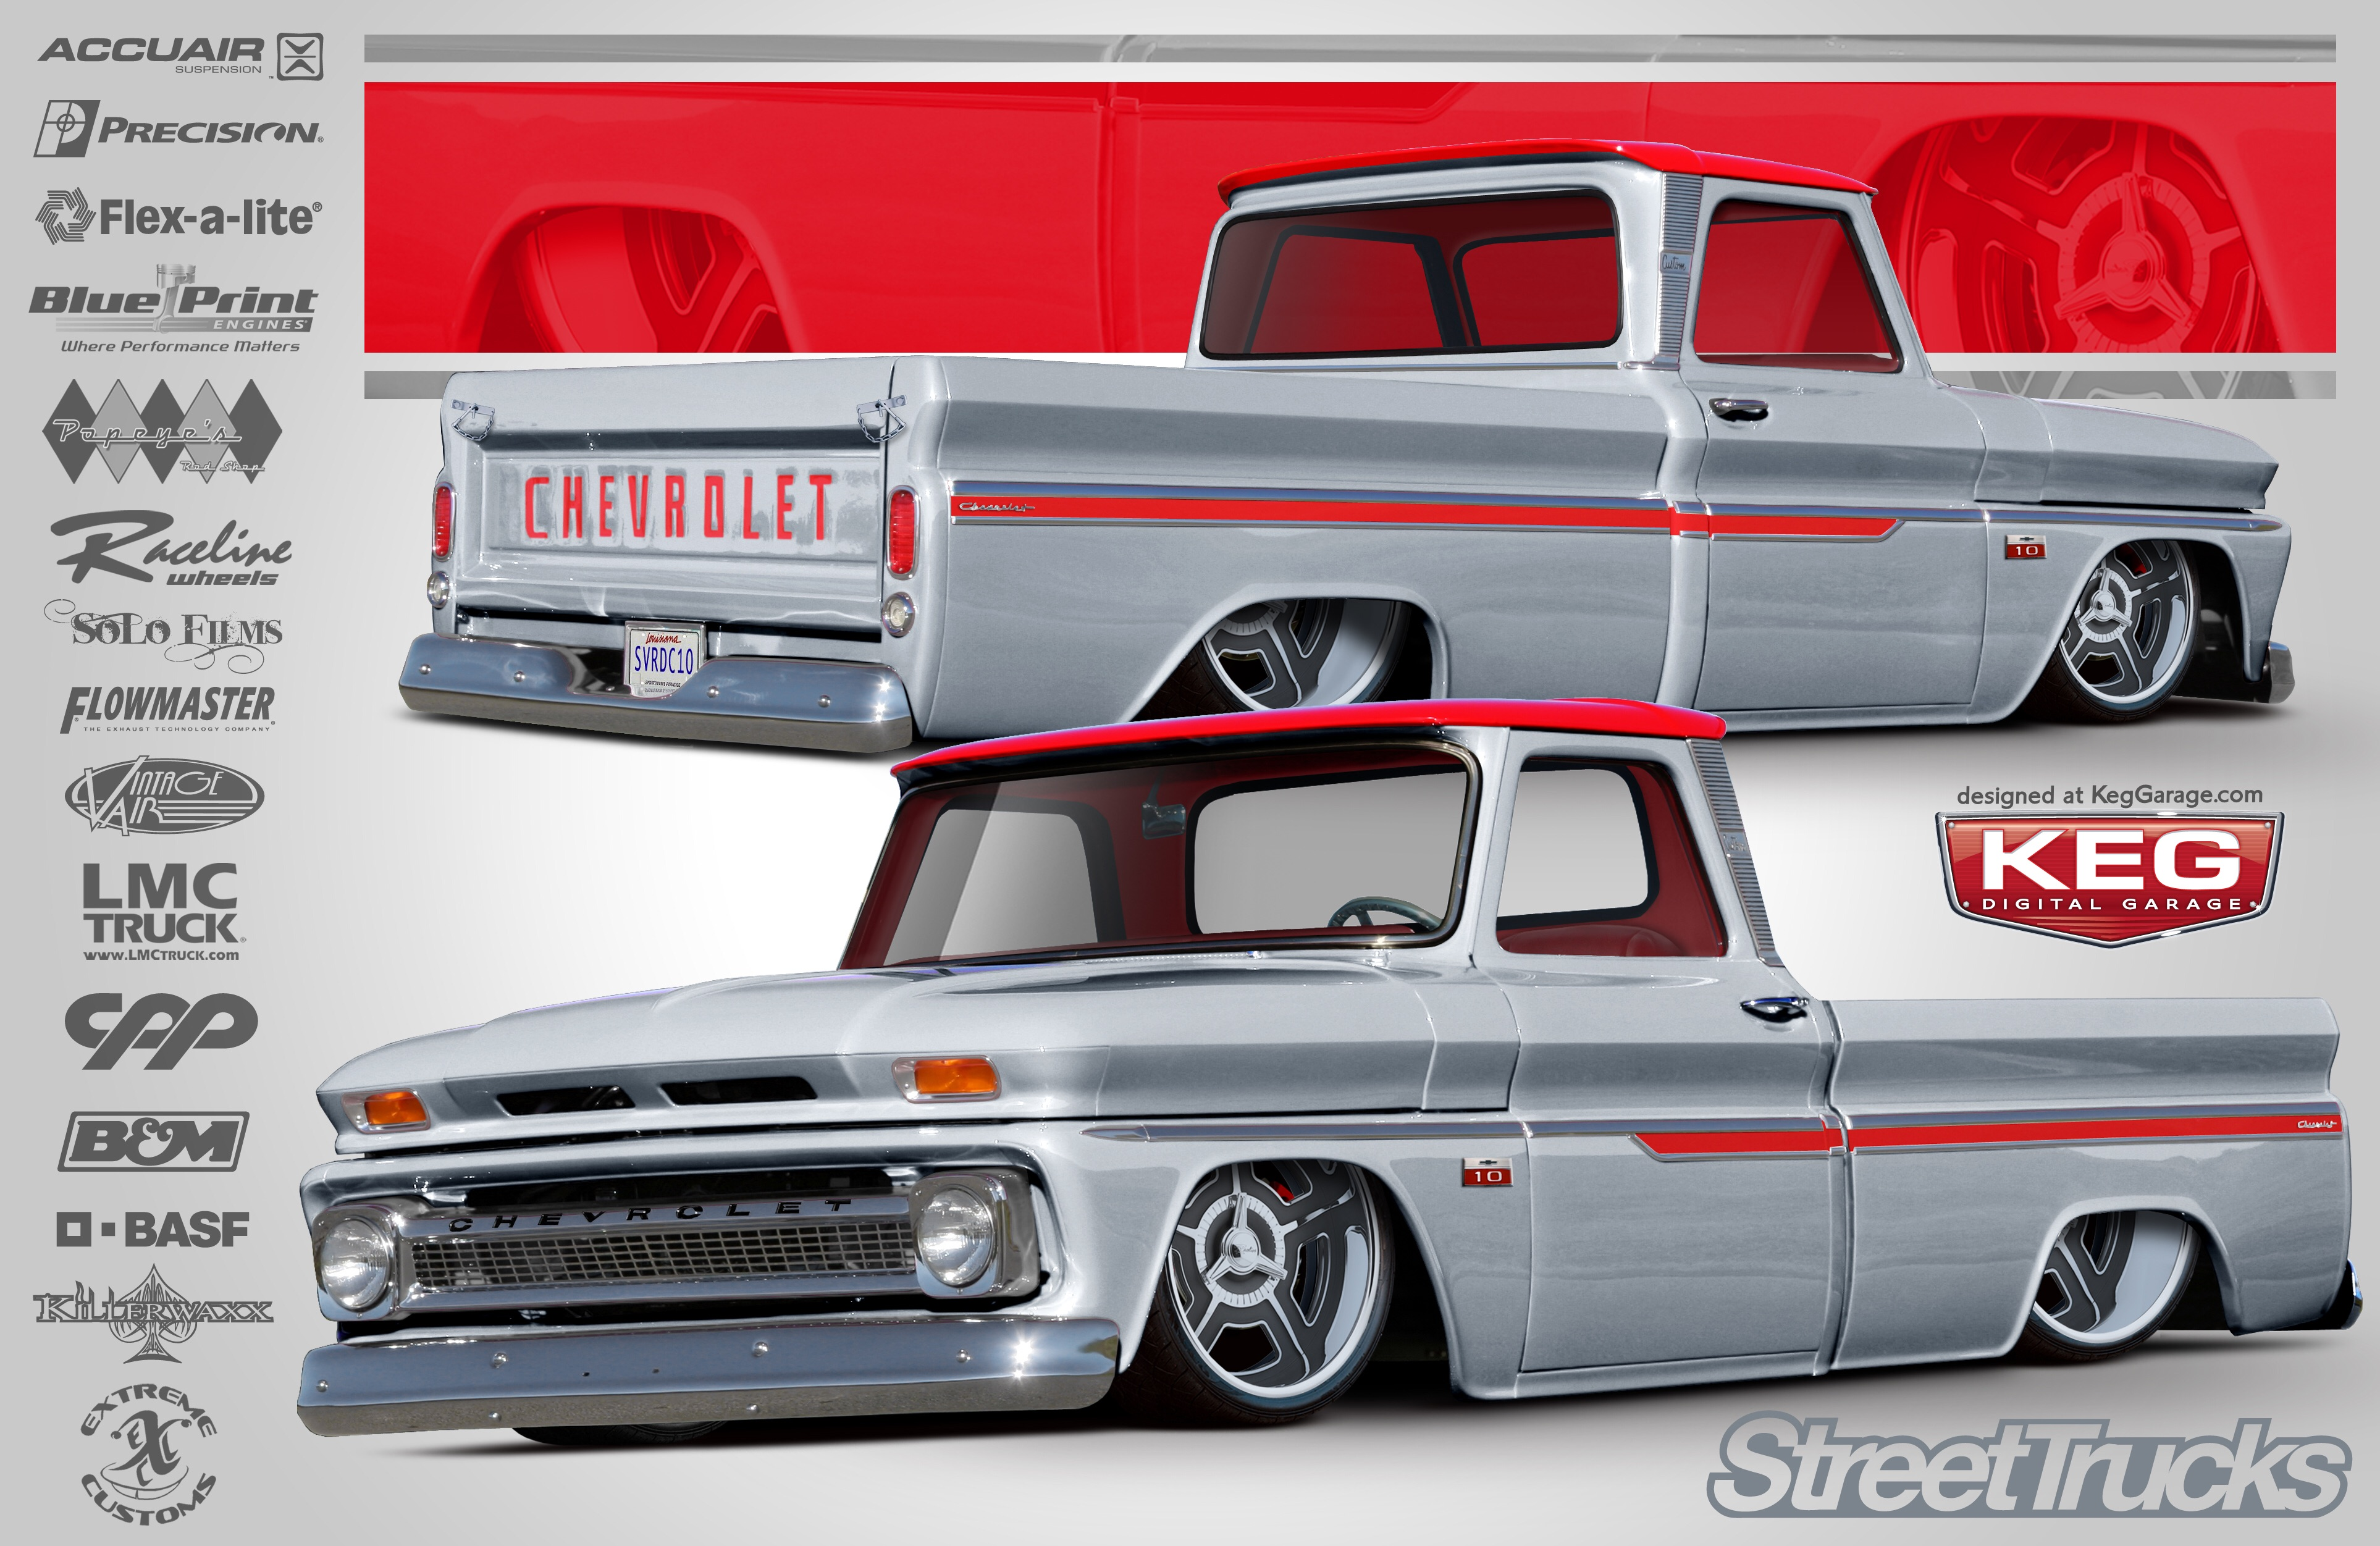 Severed Ties 1966 Chevrolet C10 Chris Stafford Truck Photo Gallery